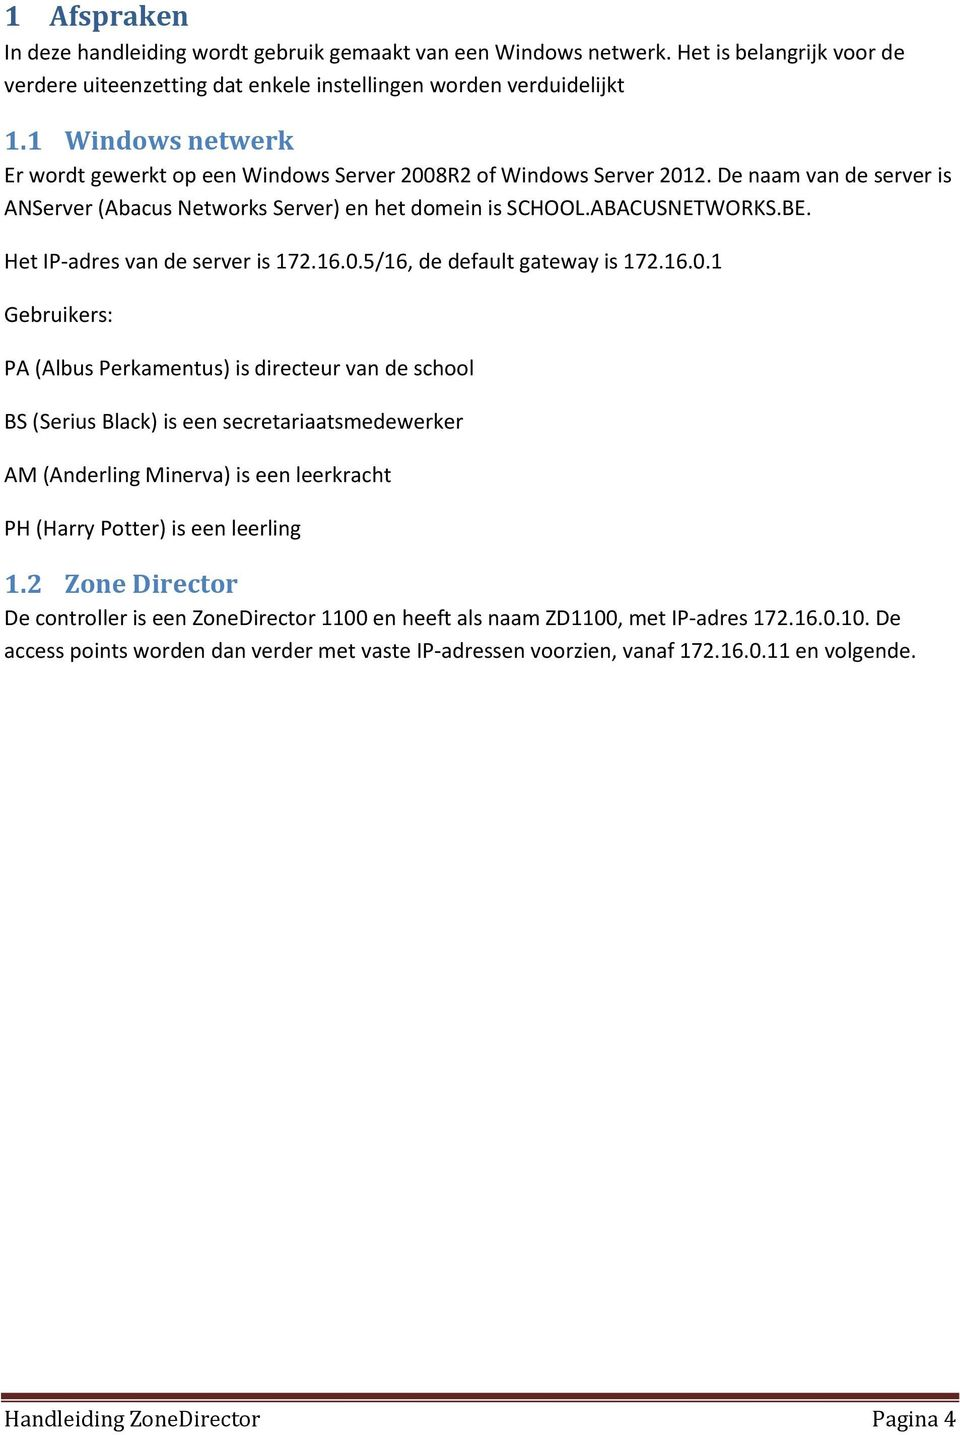 Het IP-adres van de server is 172.16.0.